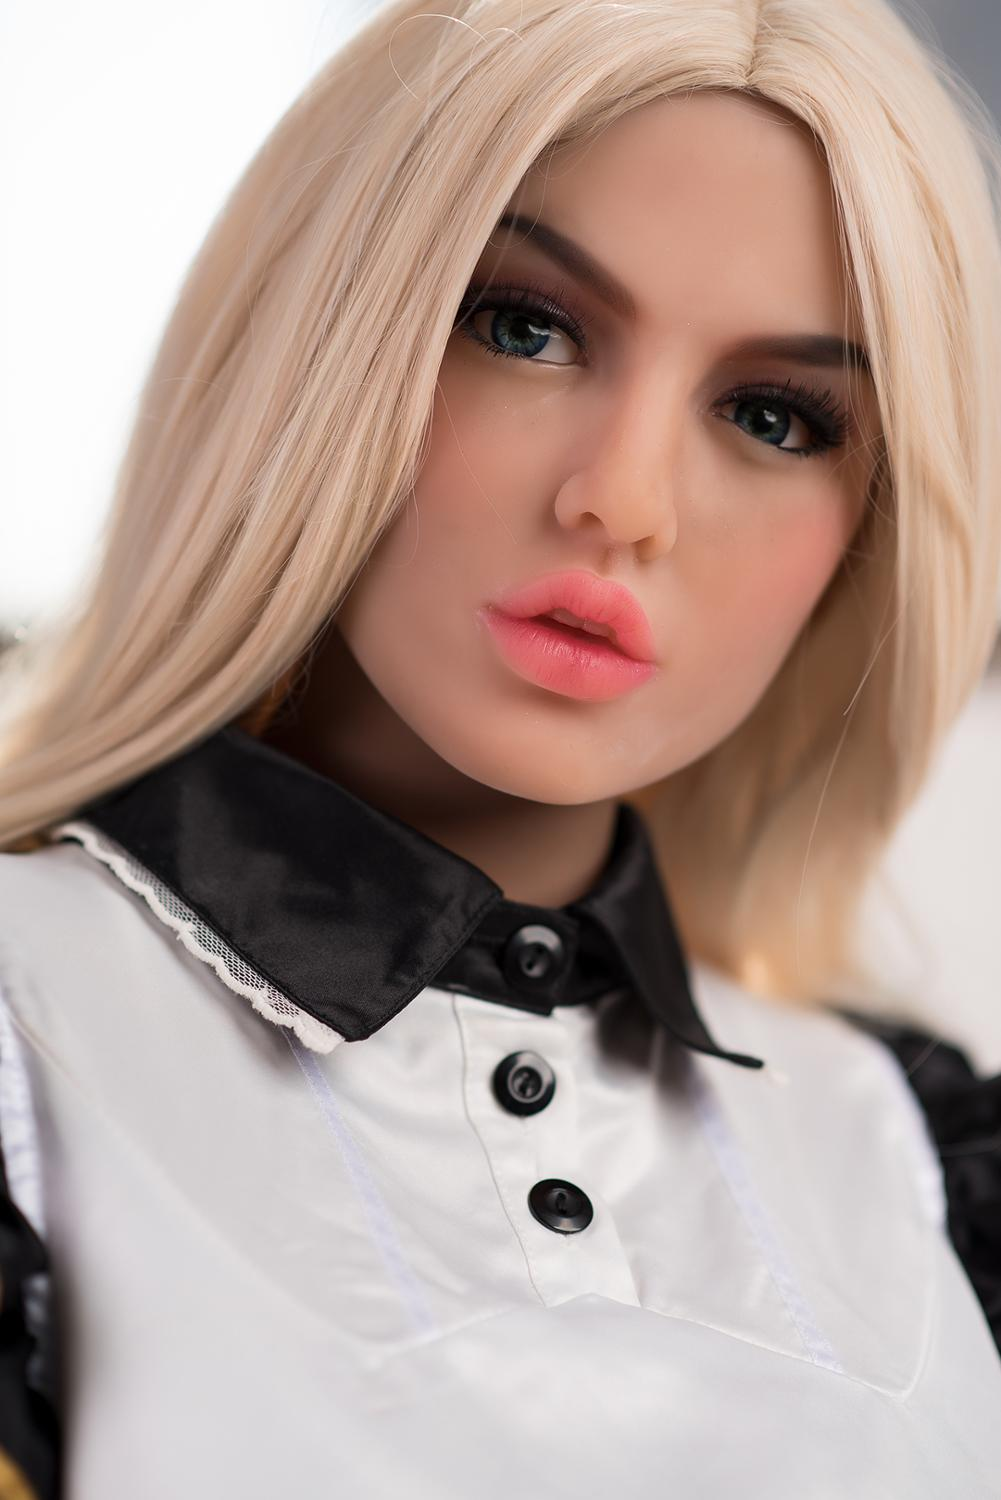 2019 FACE 33 new face <font><b>sex</b></font> <font><b>doll</b></font> head for women match with anus 165cm 160cm <font><b>150</b></font> cm <font><b>sex</b></font> <font><b>doll</b></font> image